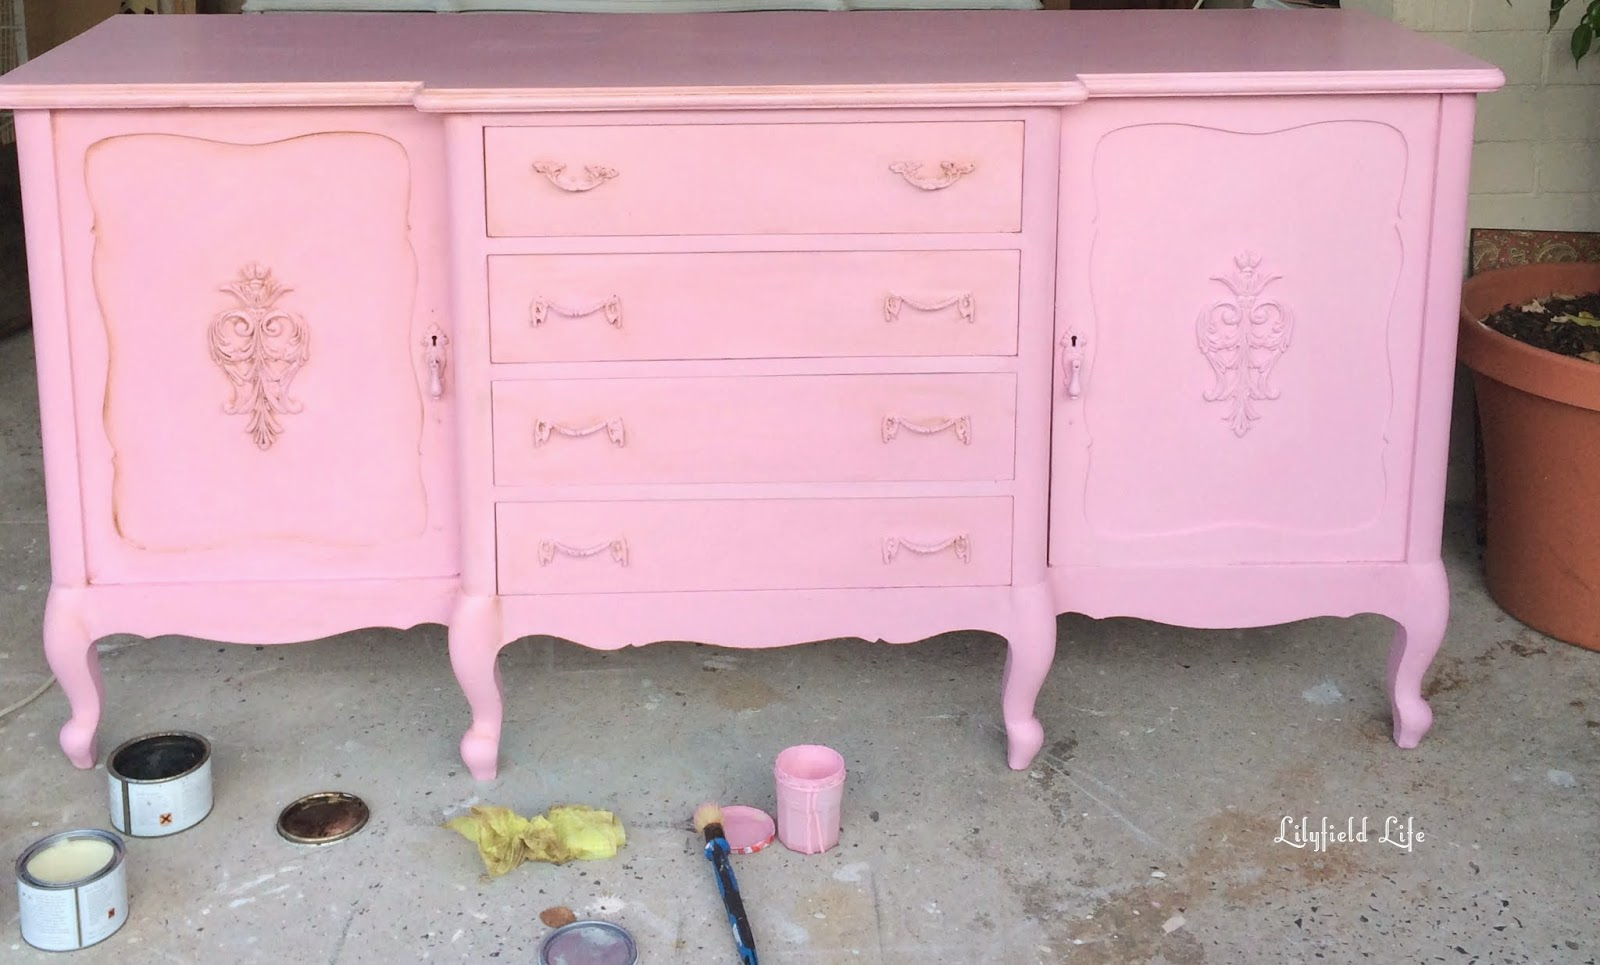 Vintage French Pink sideboard hand painted by Lilyfield life